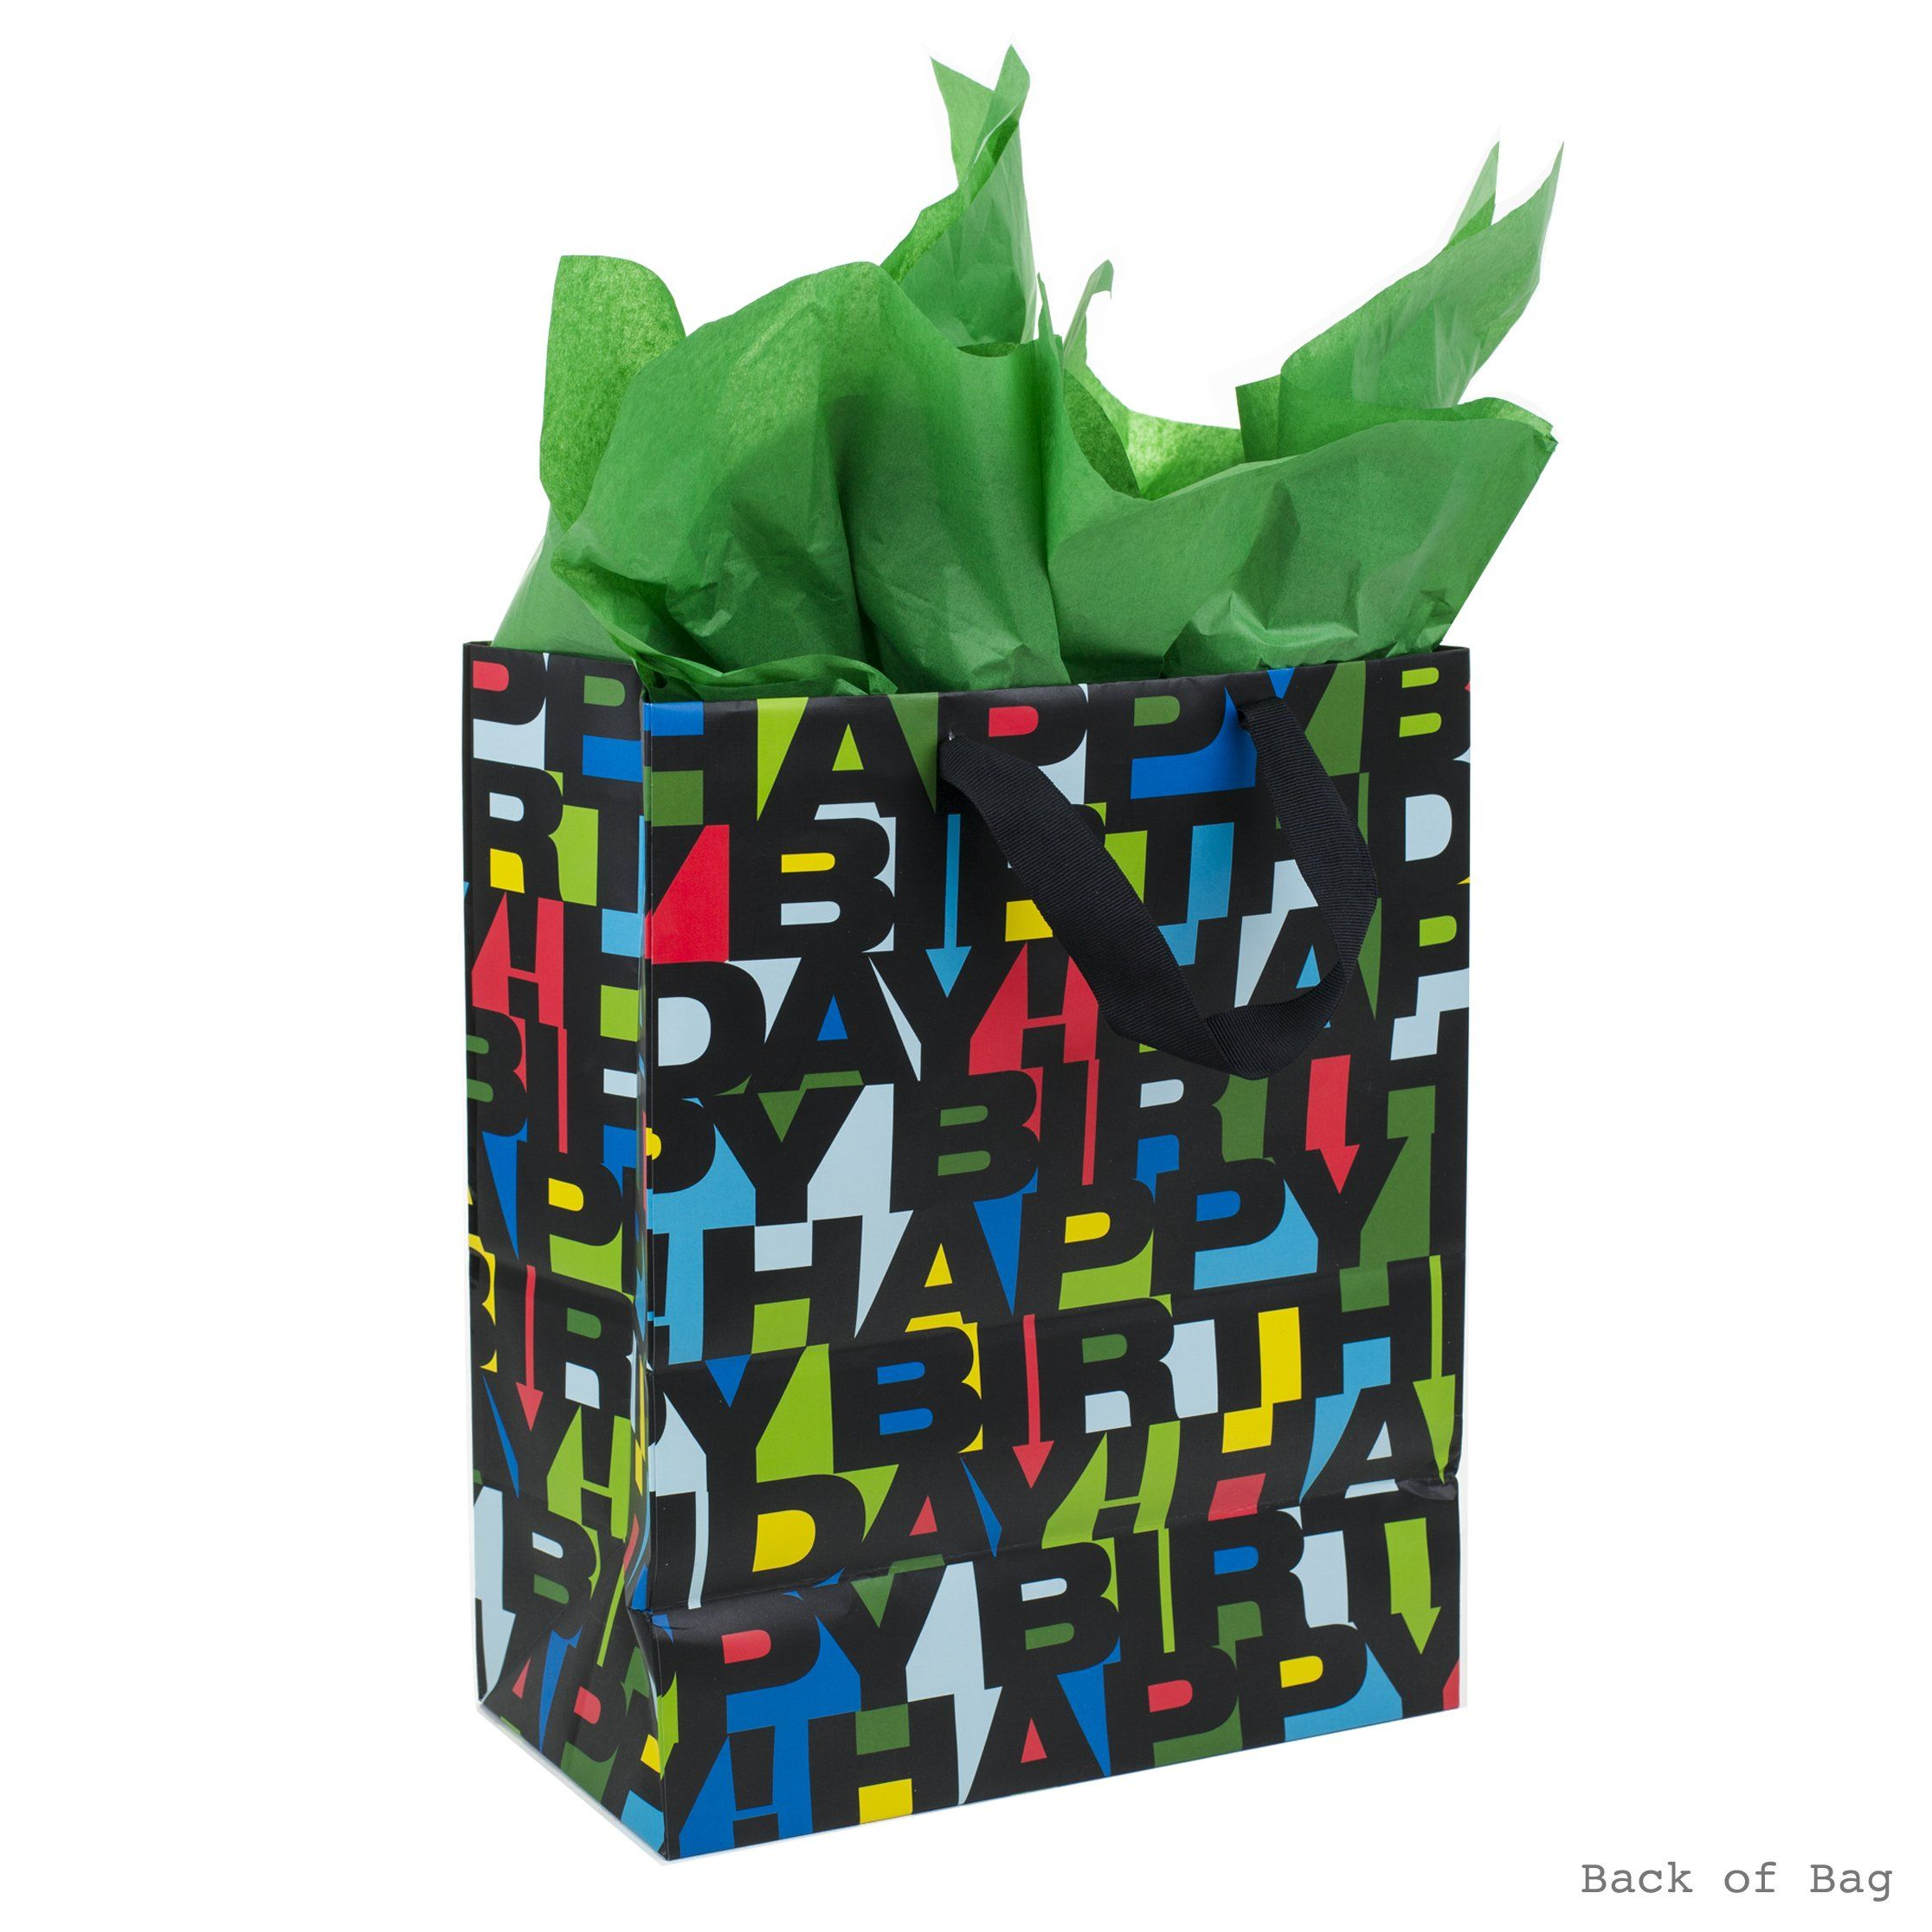 Hallmark Large Birthday Gift Bag With Tissue Paper Black Letters Click On The Image For Additional DetailsIt Is Amazon Affiliate Link